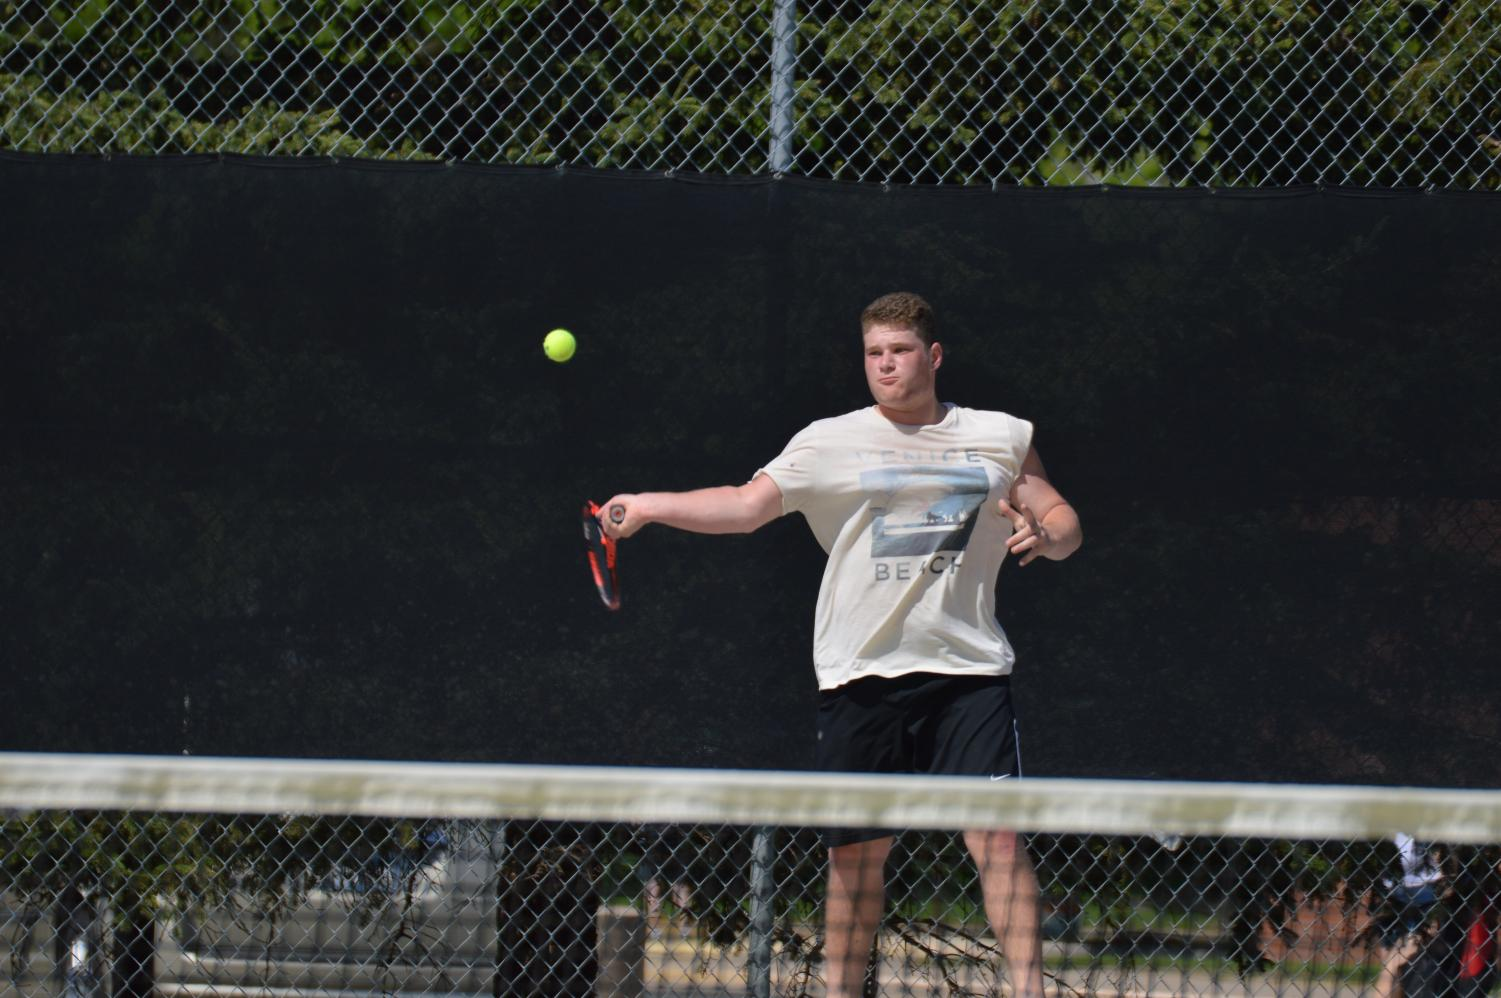 Senior Haim Lyubeznik hits a forehand during practice in preparation for the team's first Sections match May 16 against Apple Valley.